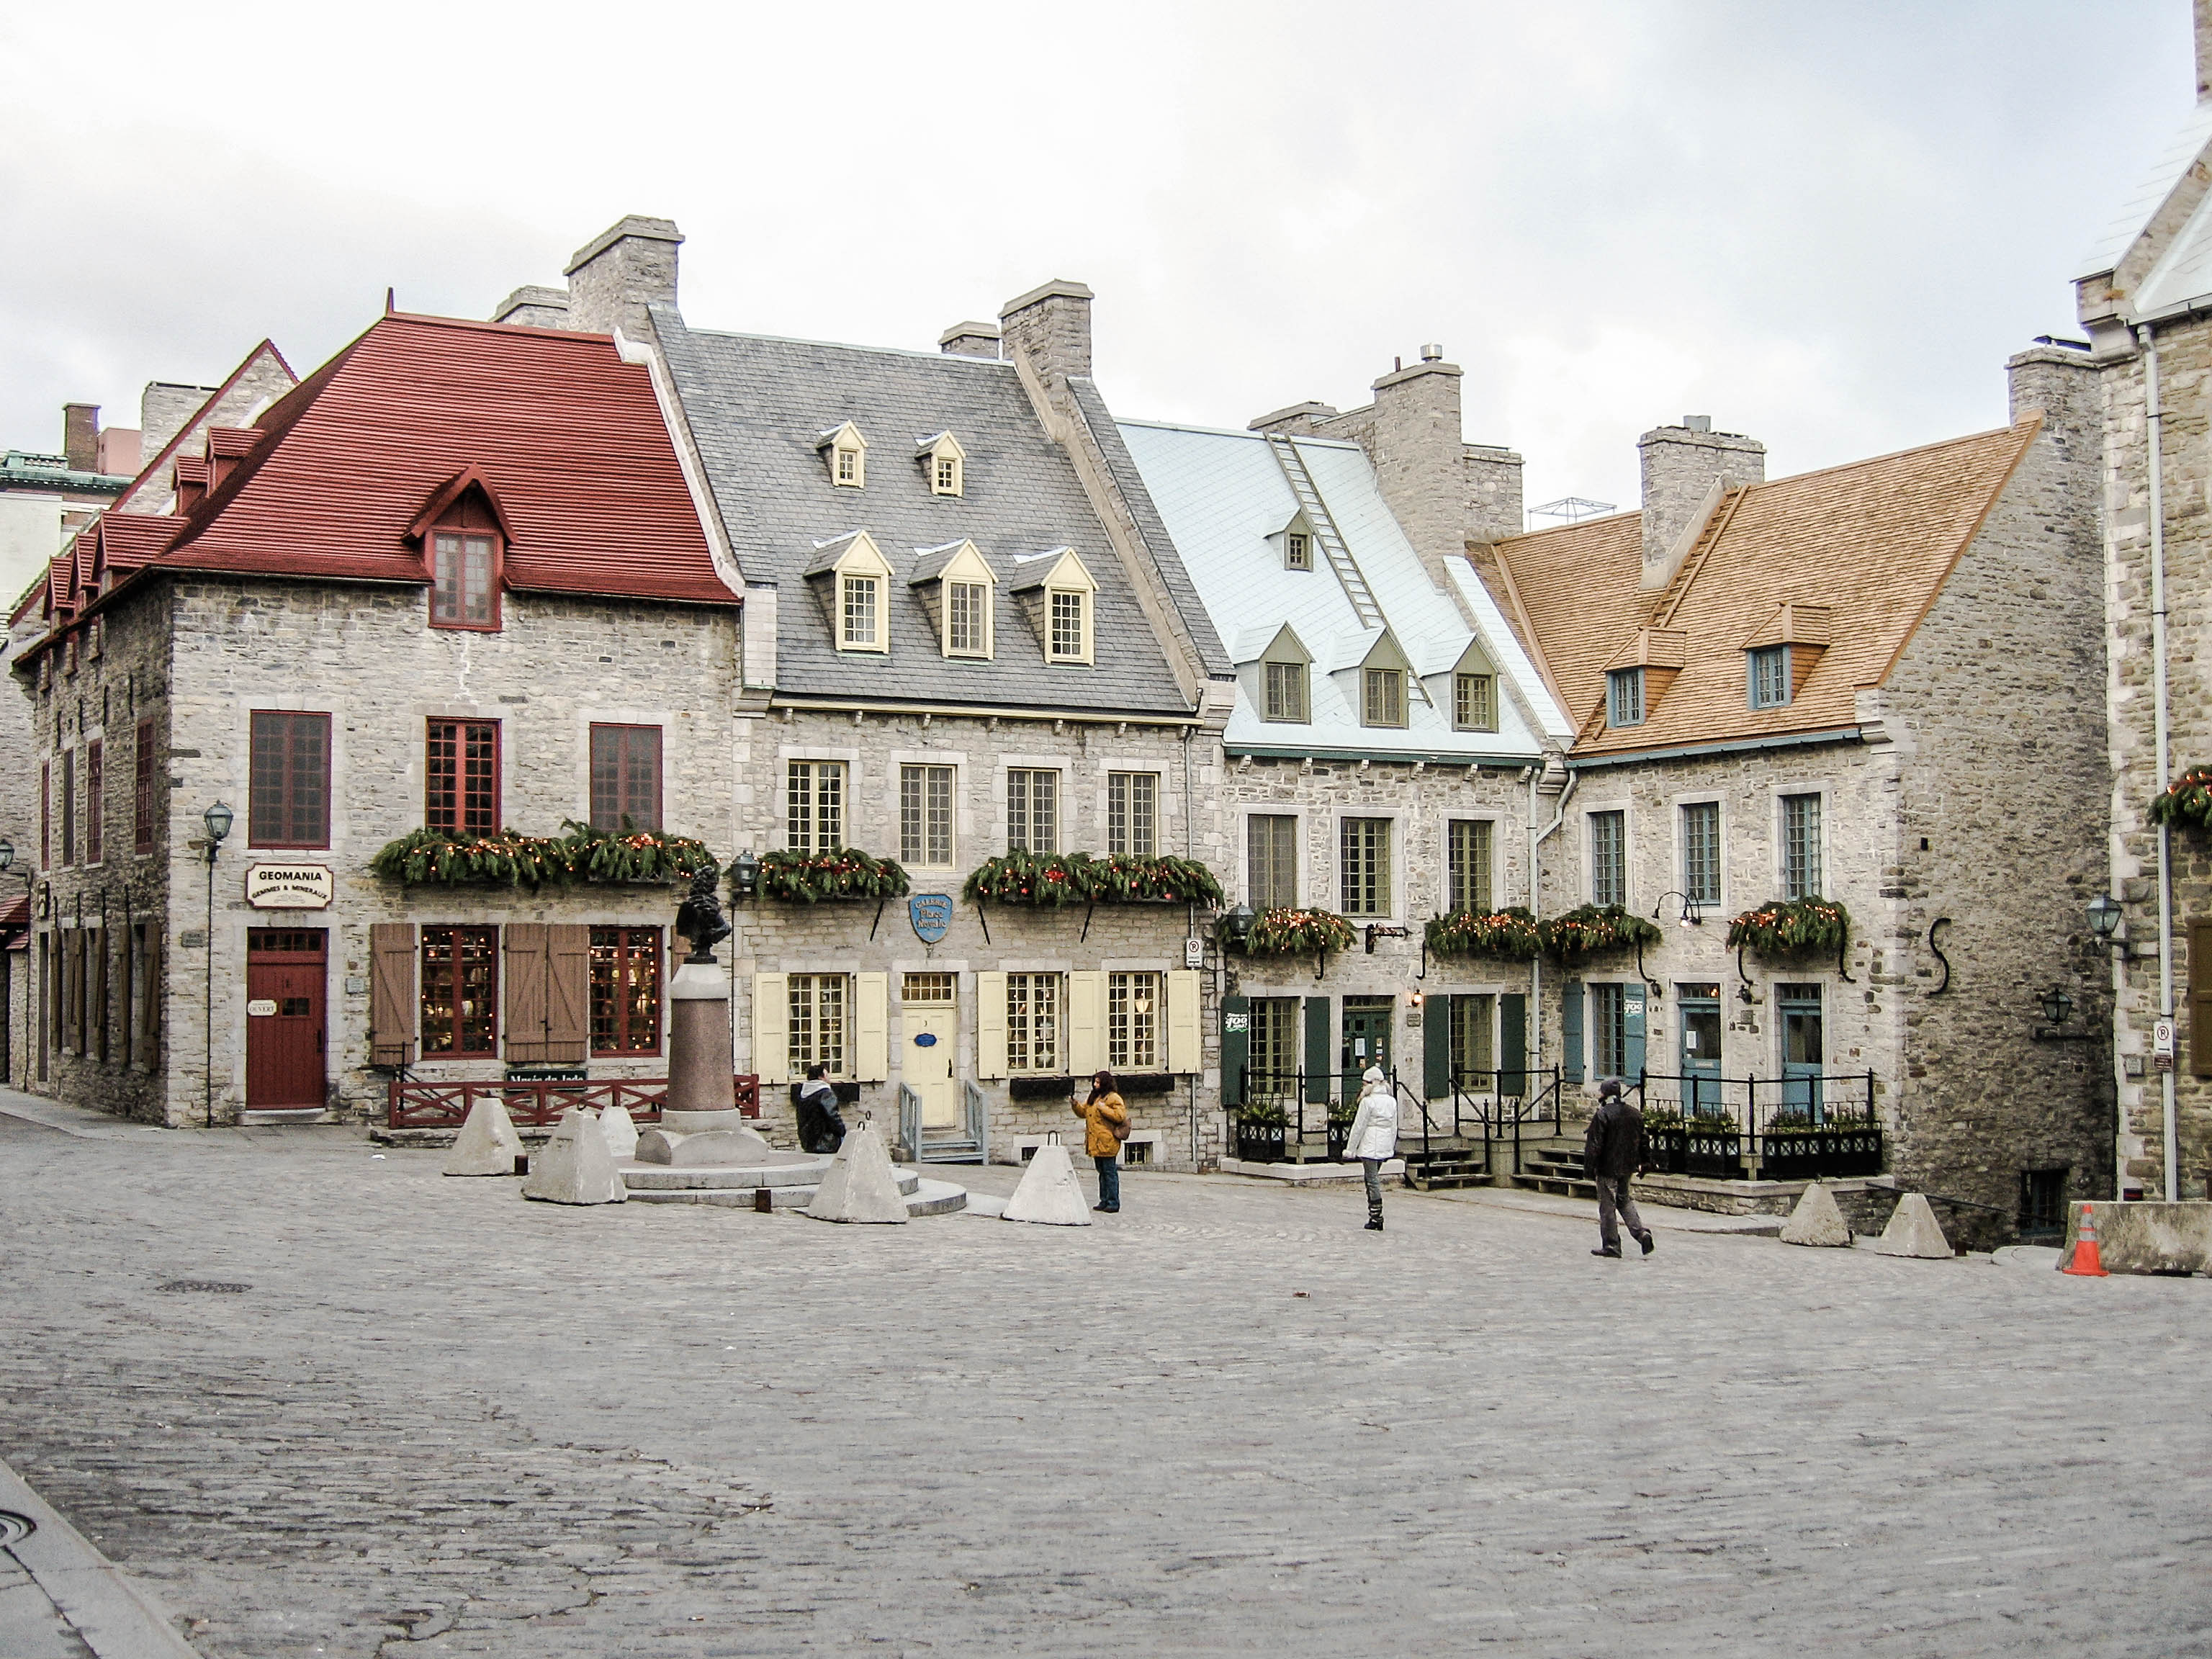 Old qubec city a quaint historic town decorated for christmas visiting old qubec city was like stepping back in time we enjoyed the atmosphere and exploring the old city and experiencing the food and culture solutioingenieria Image collections